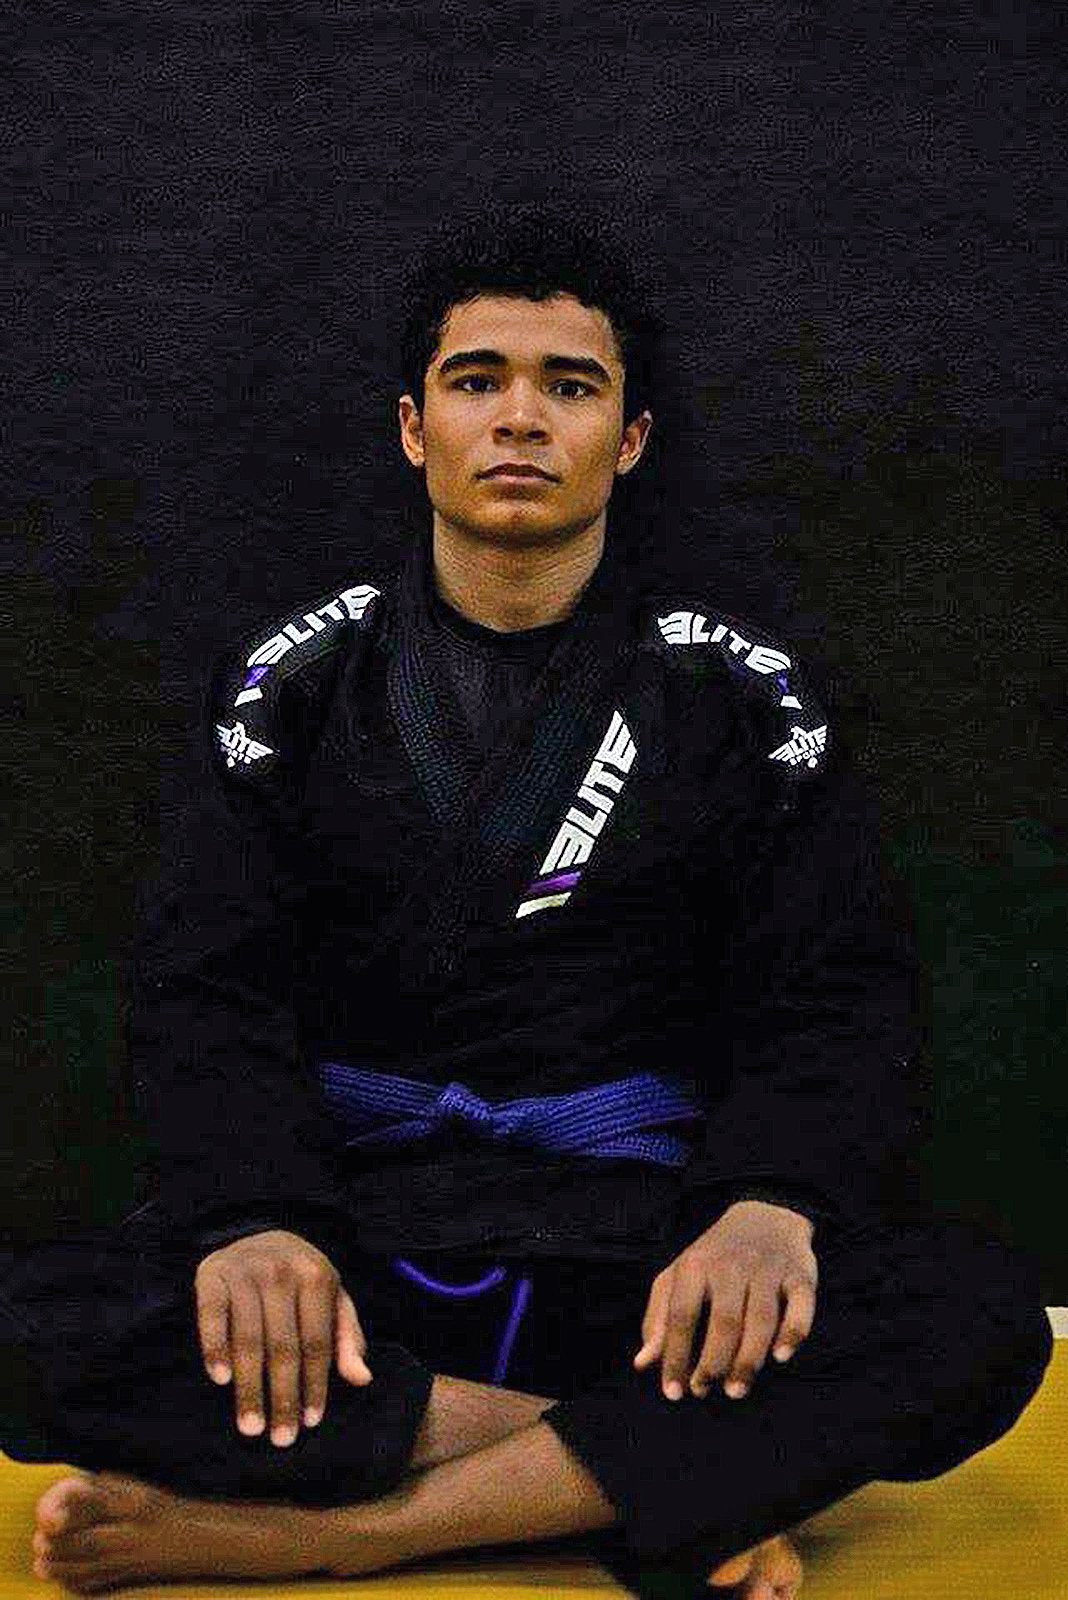 Elite Sports Team Elite Bjj Fighter Johnif de Oliveira Rocha  Image8